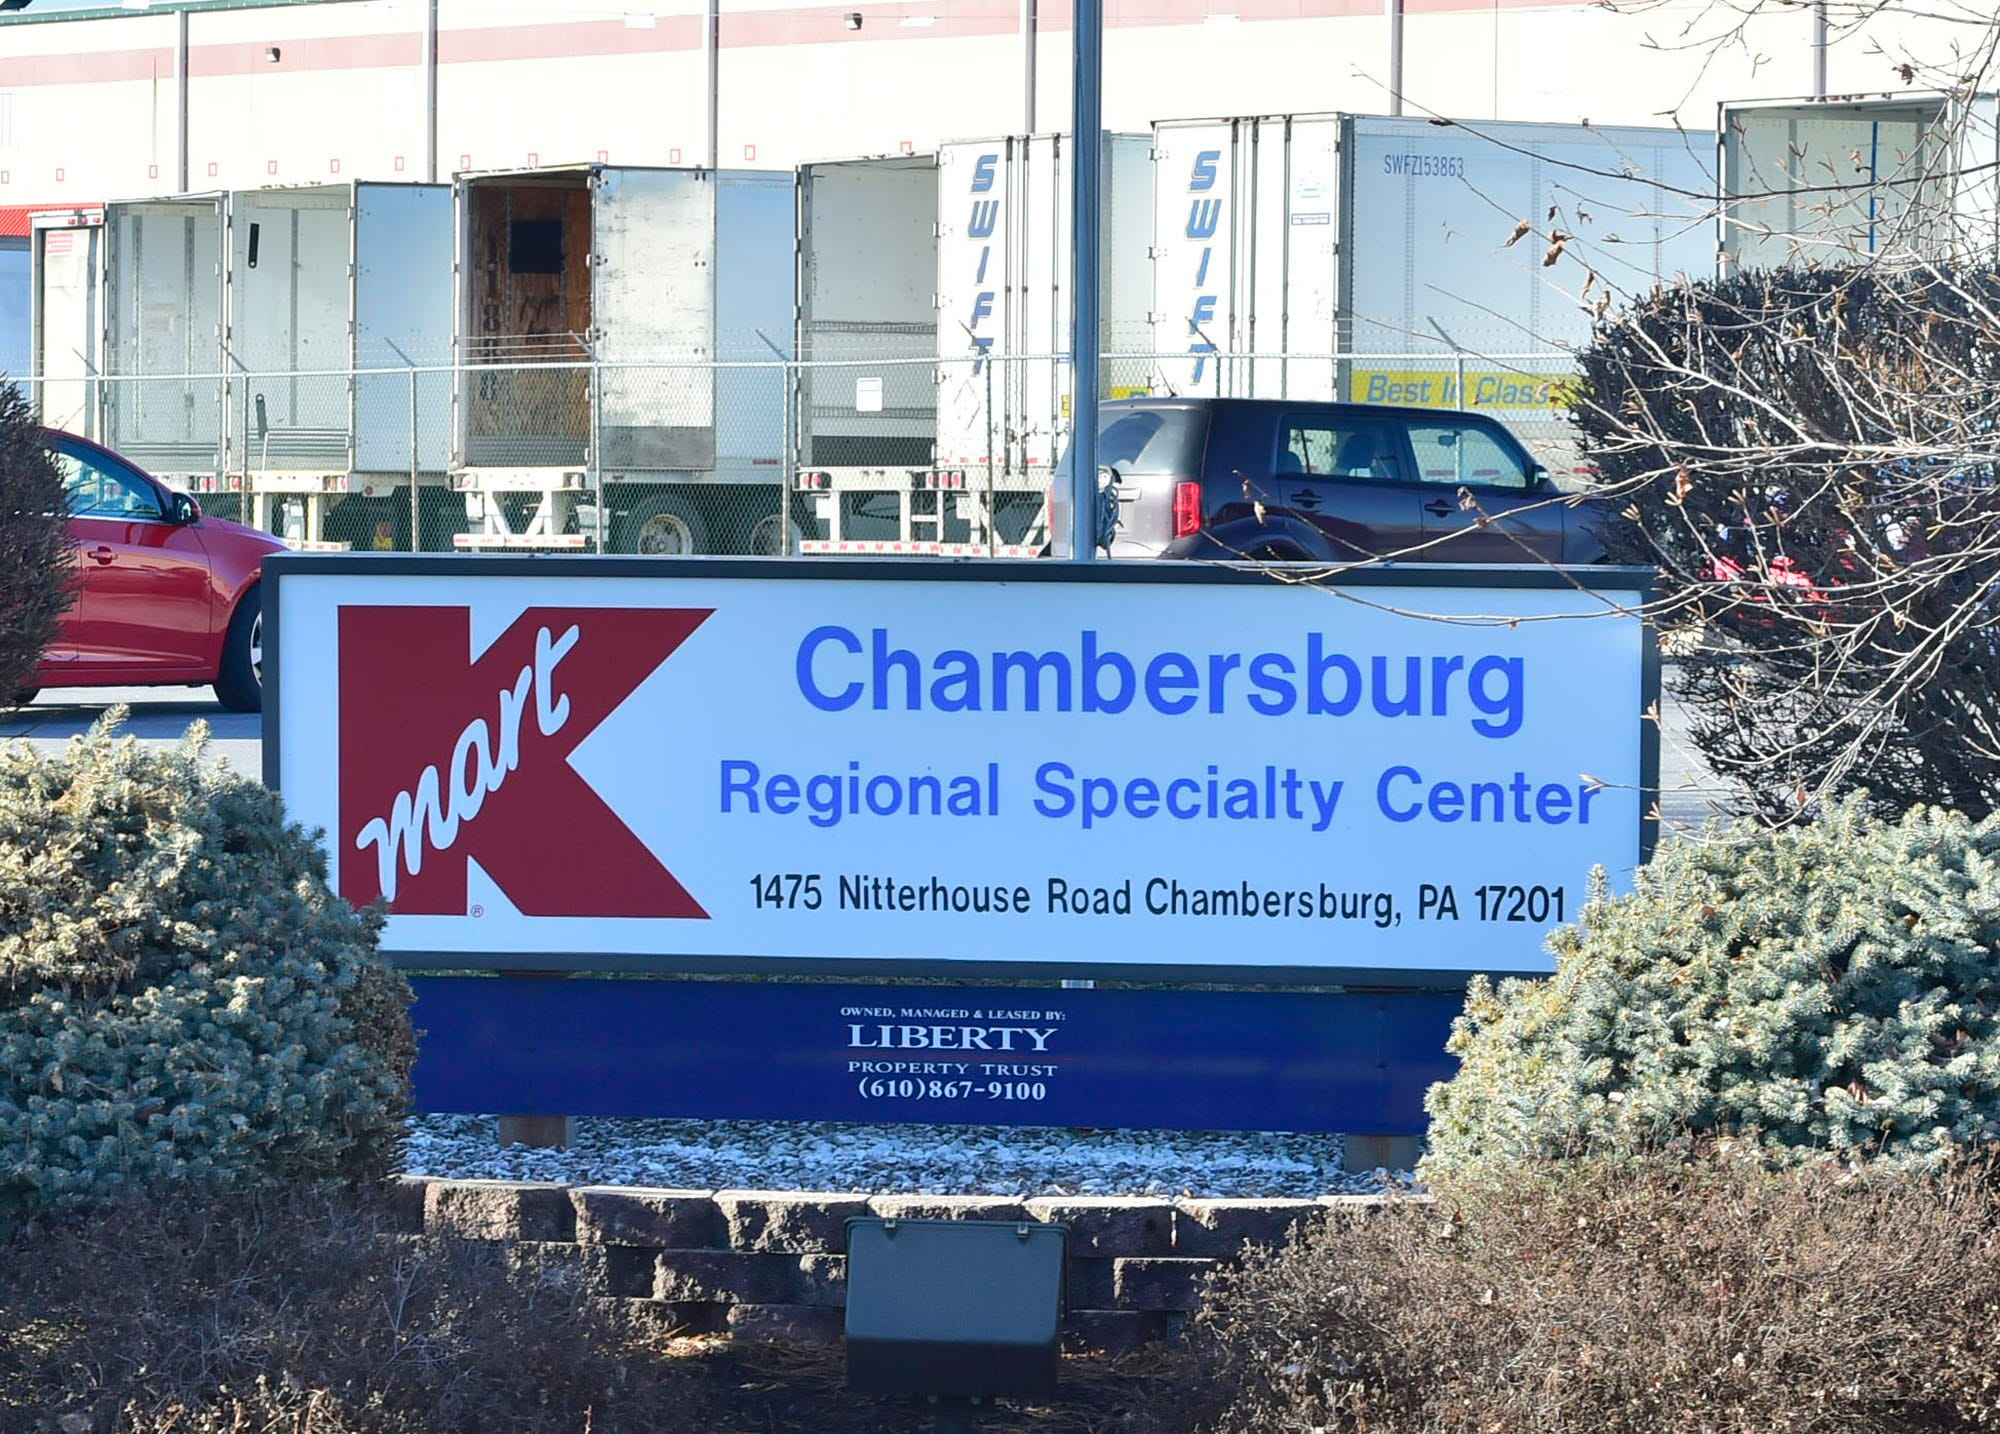 Kmart is closing the local distribution center at 1475 Nitterhouse Drive, Chambersburg. Sears Holdings is under bankruptcy protection and is trying to sell its Sears and Kmart stores as a going operation.